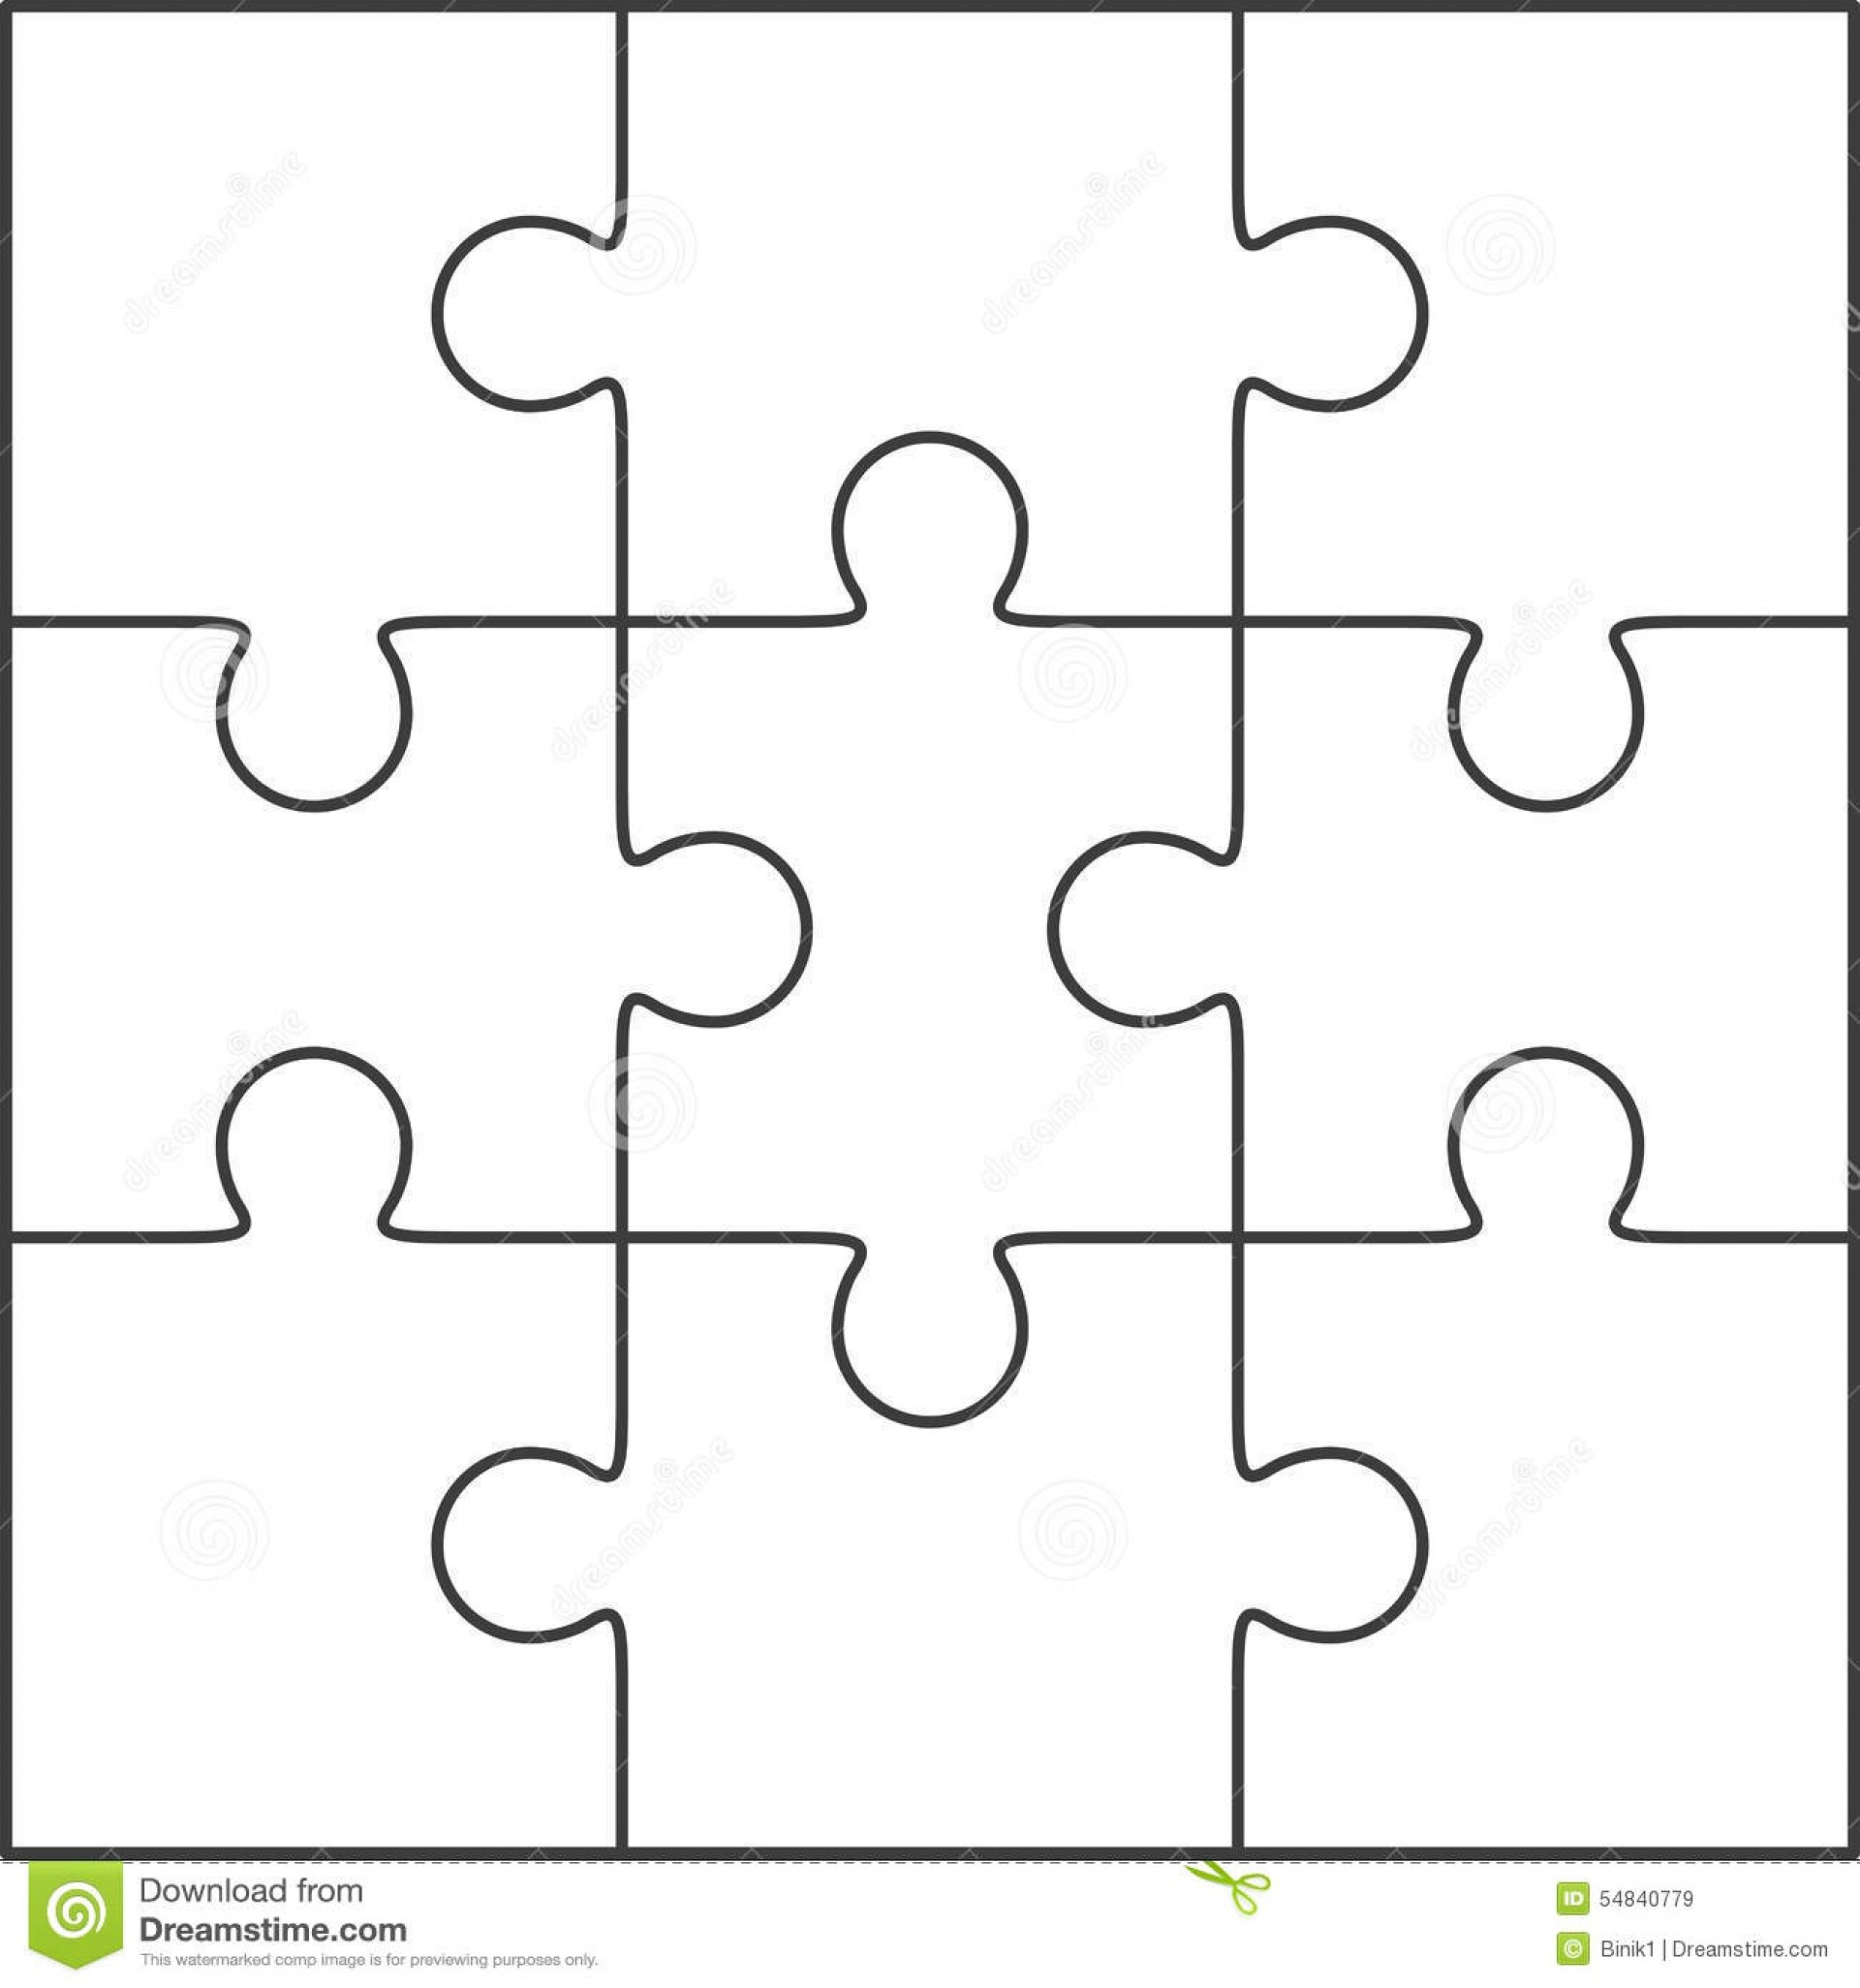 010 Jig Saw Puzzle Template Jigsaw Blank Twenty Pieces Simple Best - Printable Jigsaw Puzzle Templates Blank